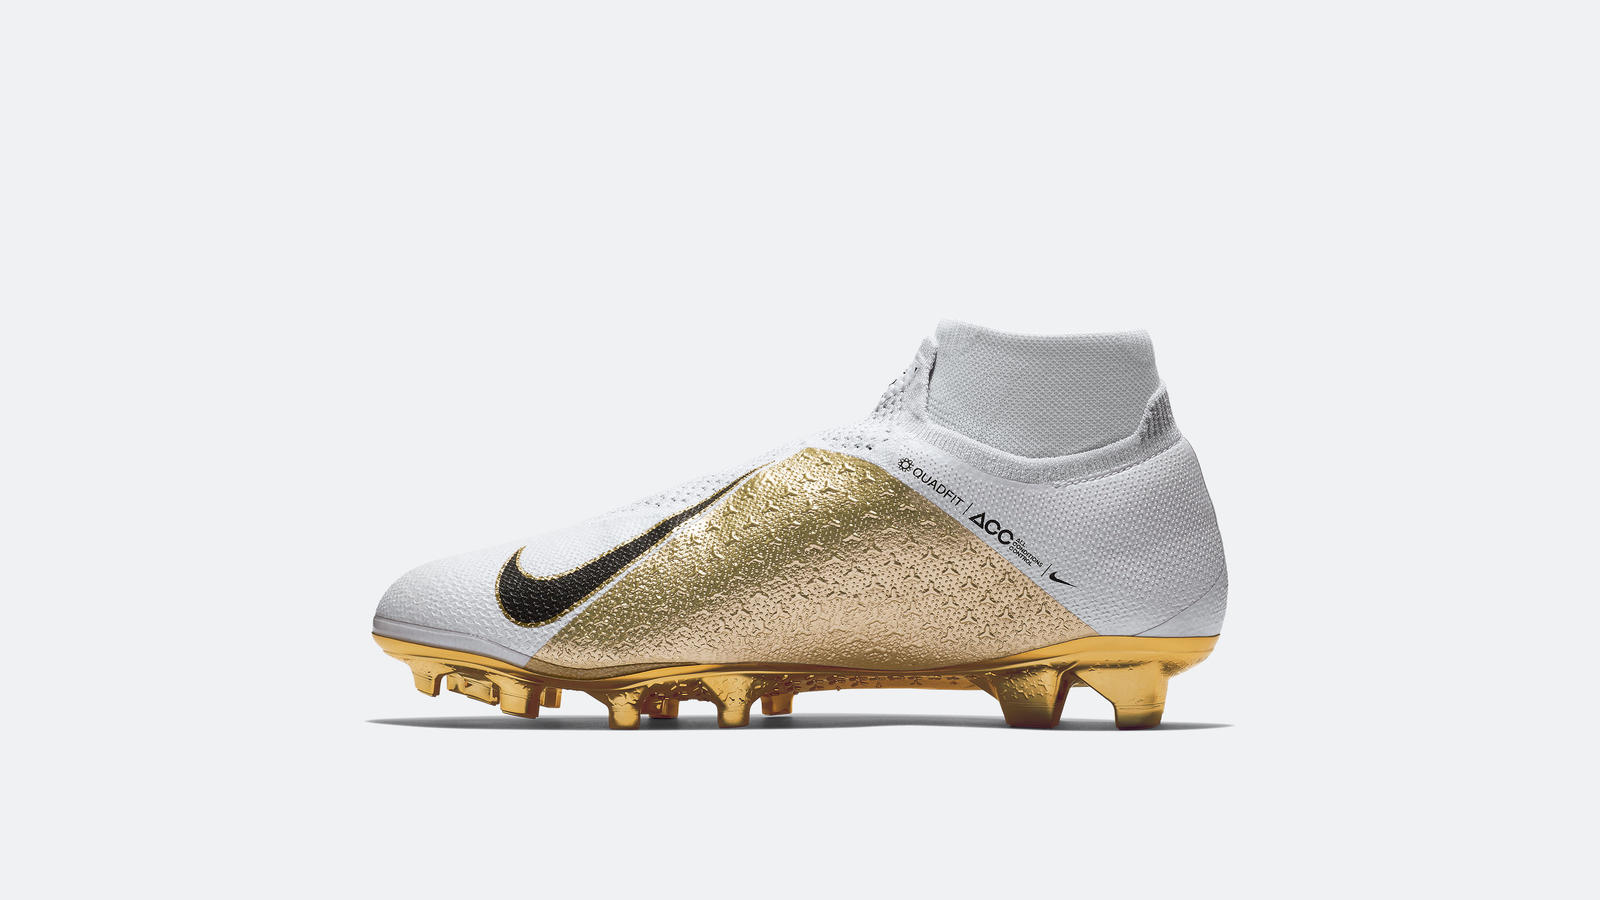 Nikefootball goldphantom 2018 re 6 hd 1600